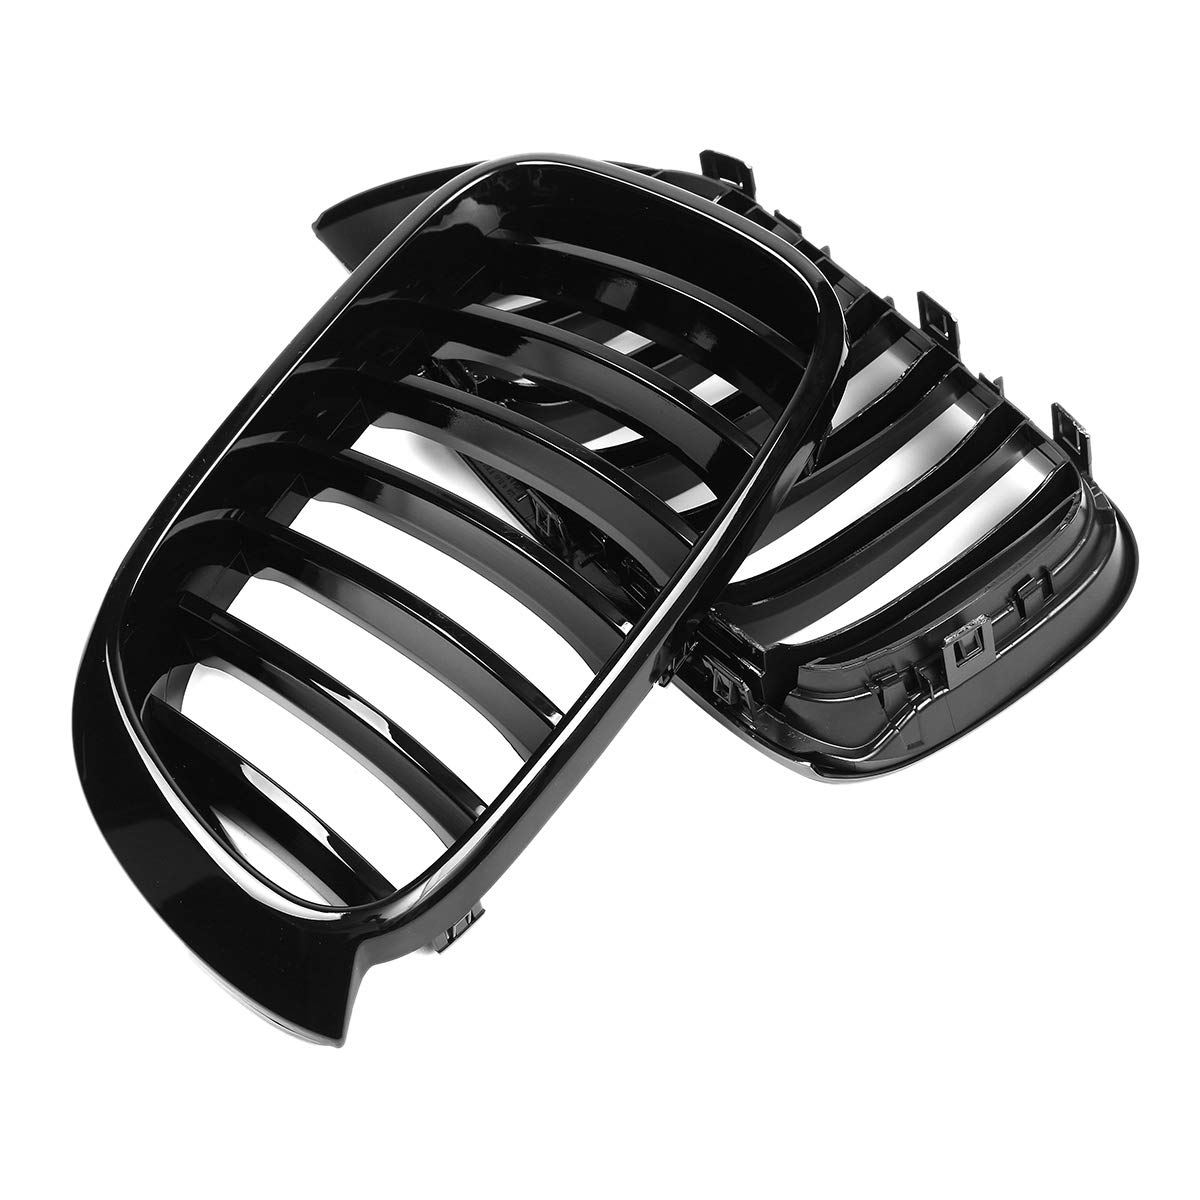 Andifany Gloss Black Car Front Kidney Grill Grilles for X3 F25 X4 F26 2014 2015 2016 2017 Replacement Car Styling